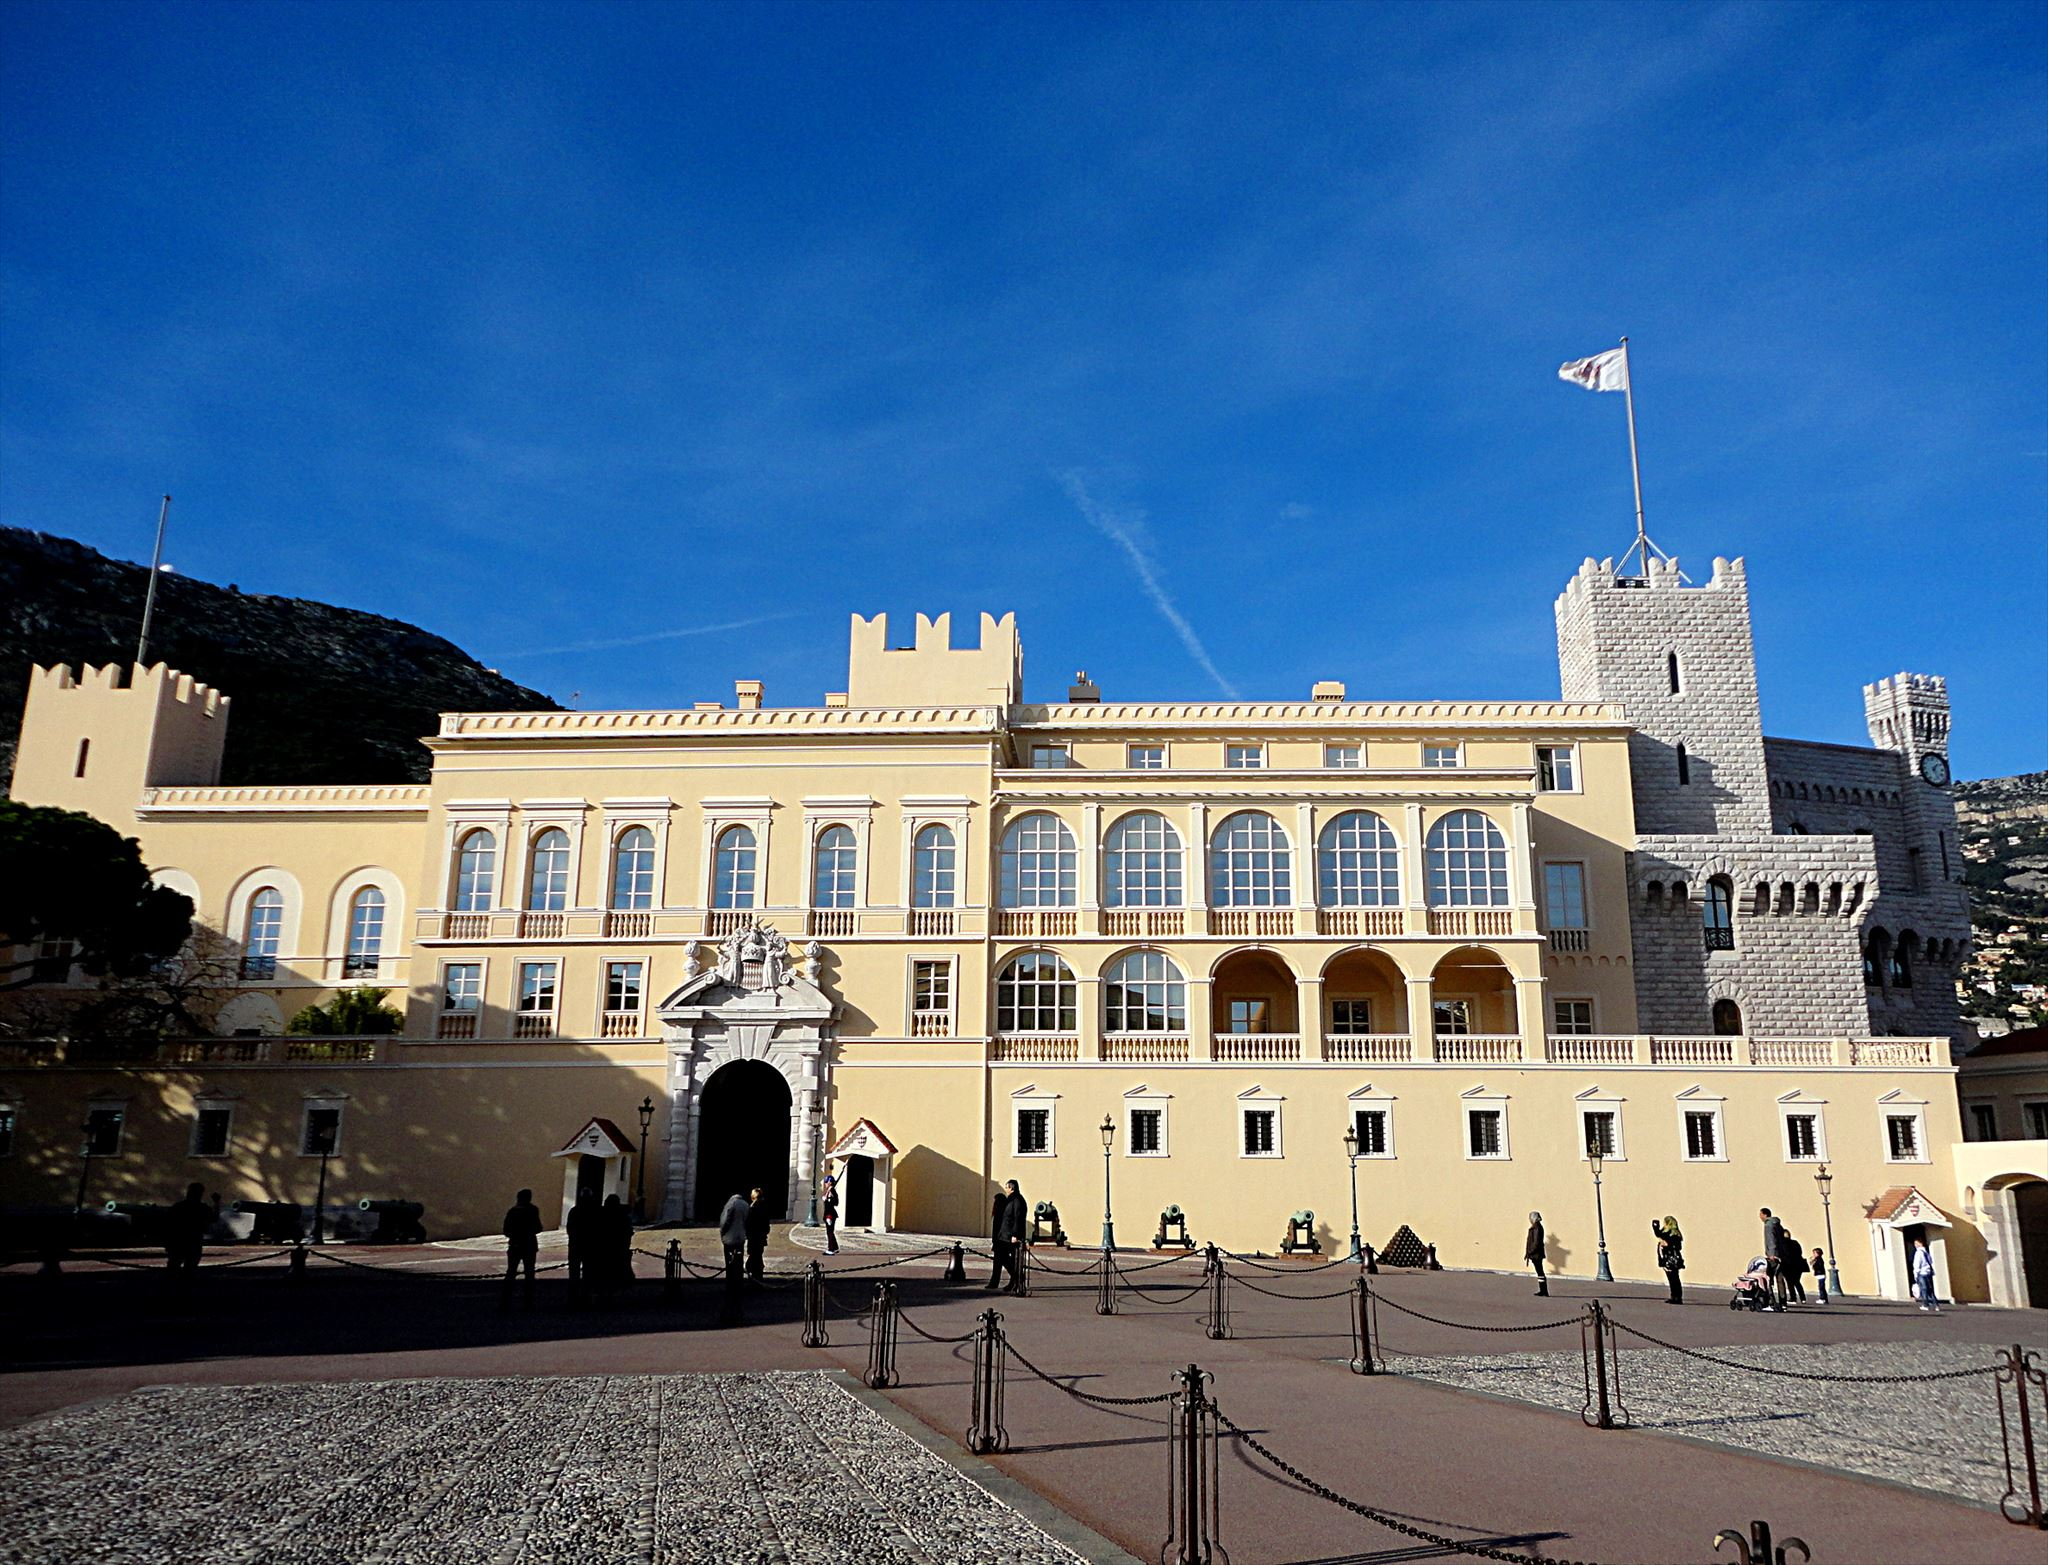 The Palace of Monaco